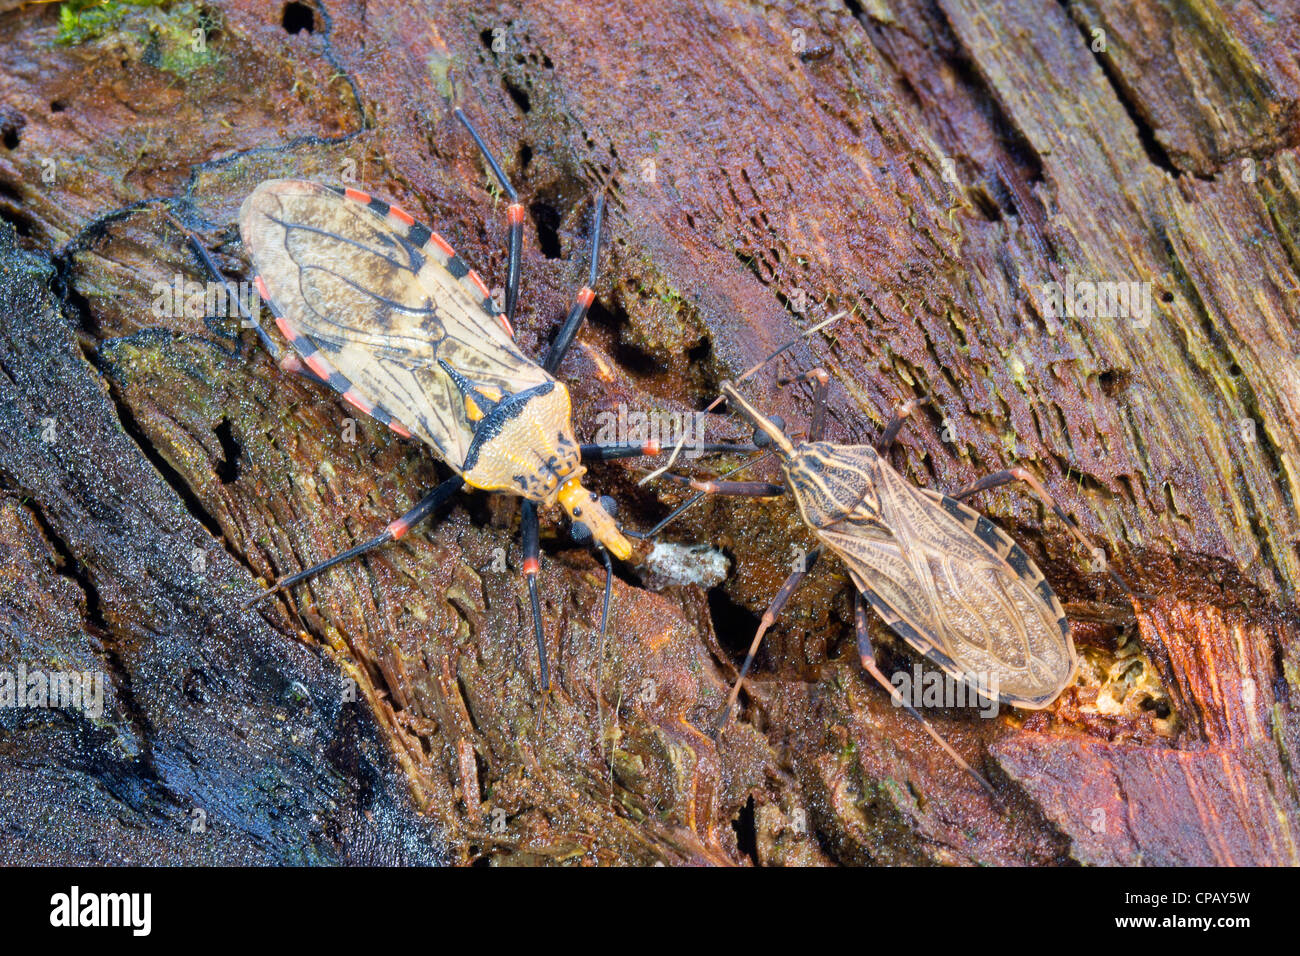 Kissing Bug (Triatoma sp.) The vector for Chagas Disease - Stock Image